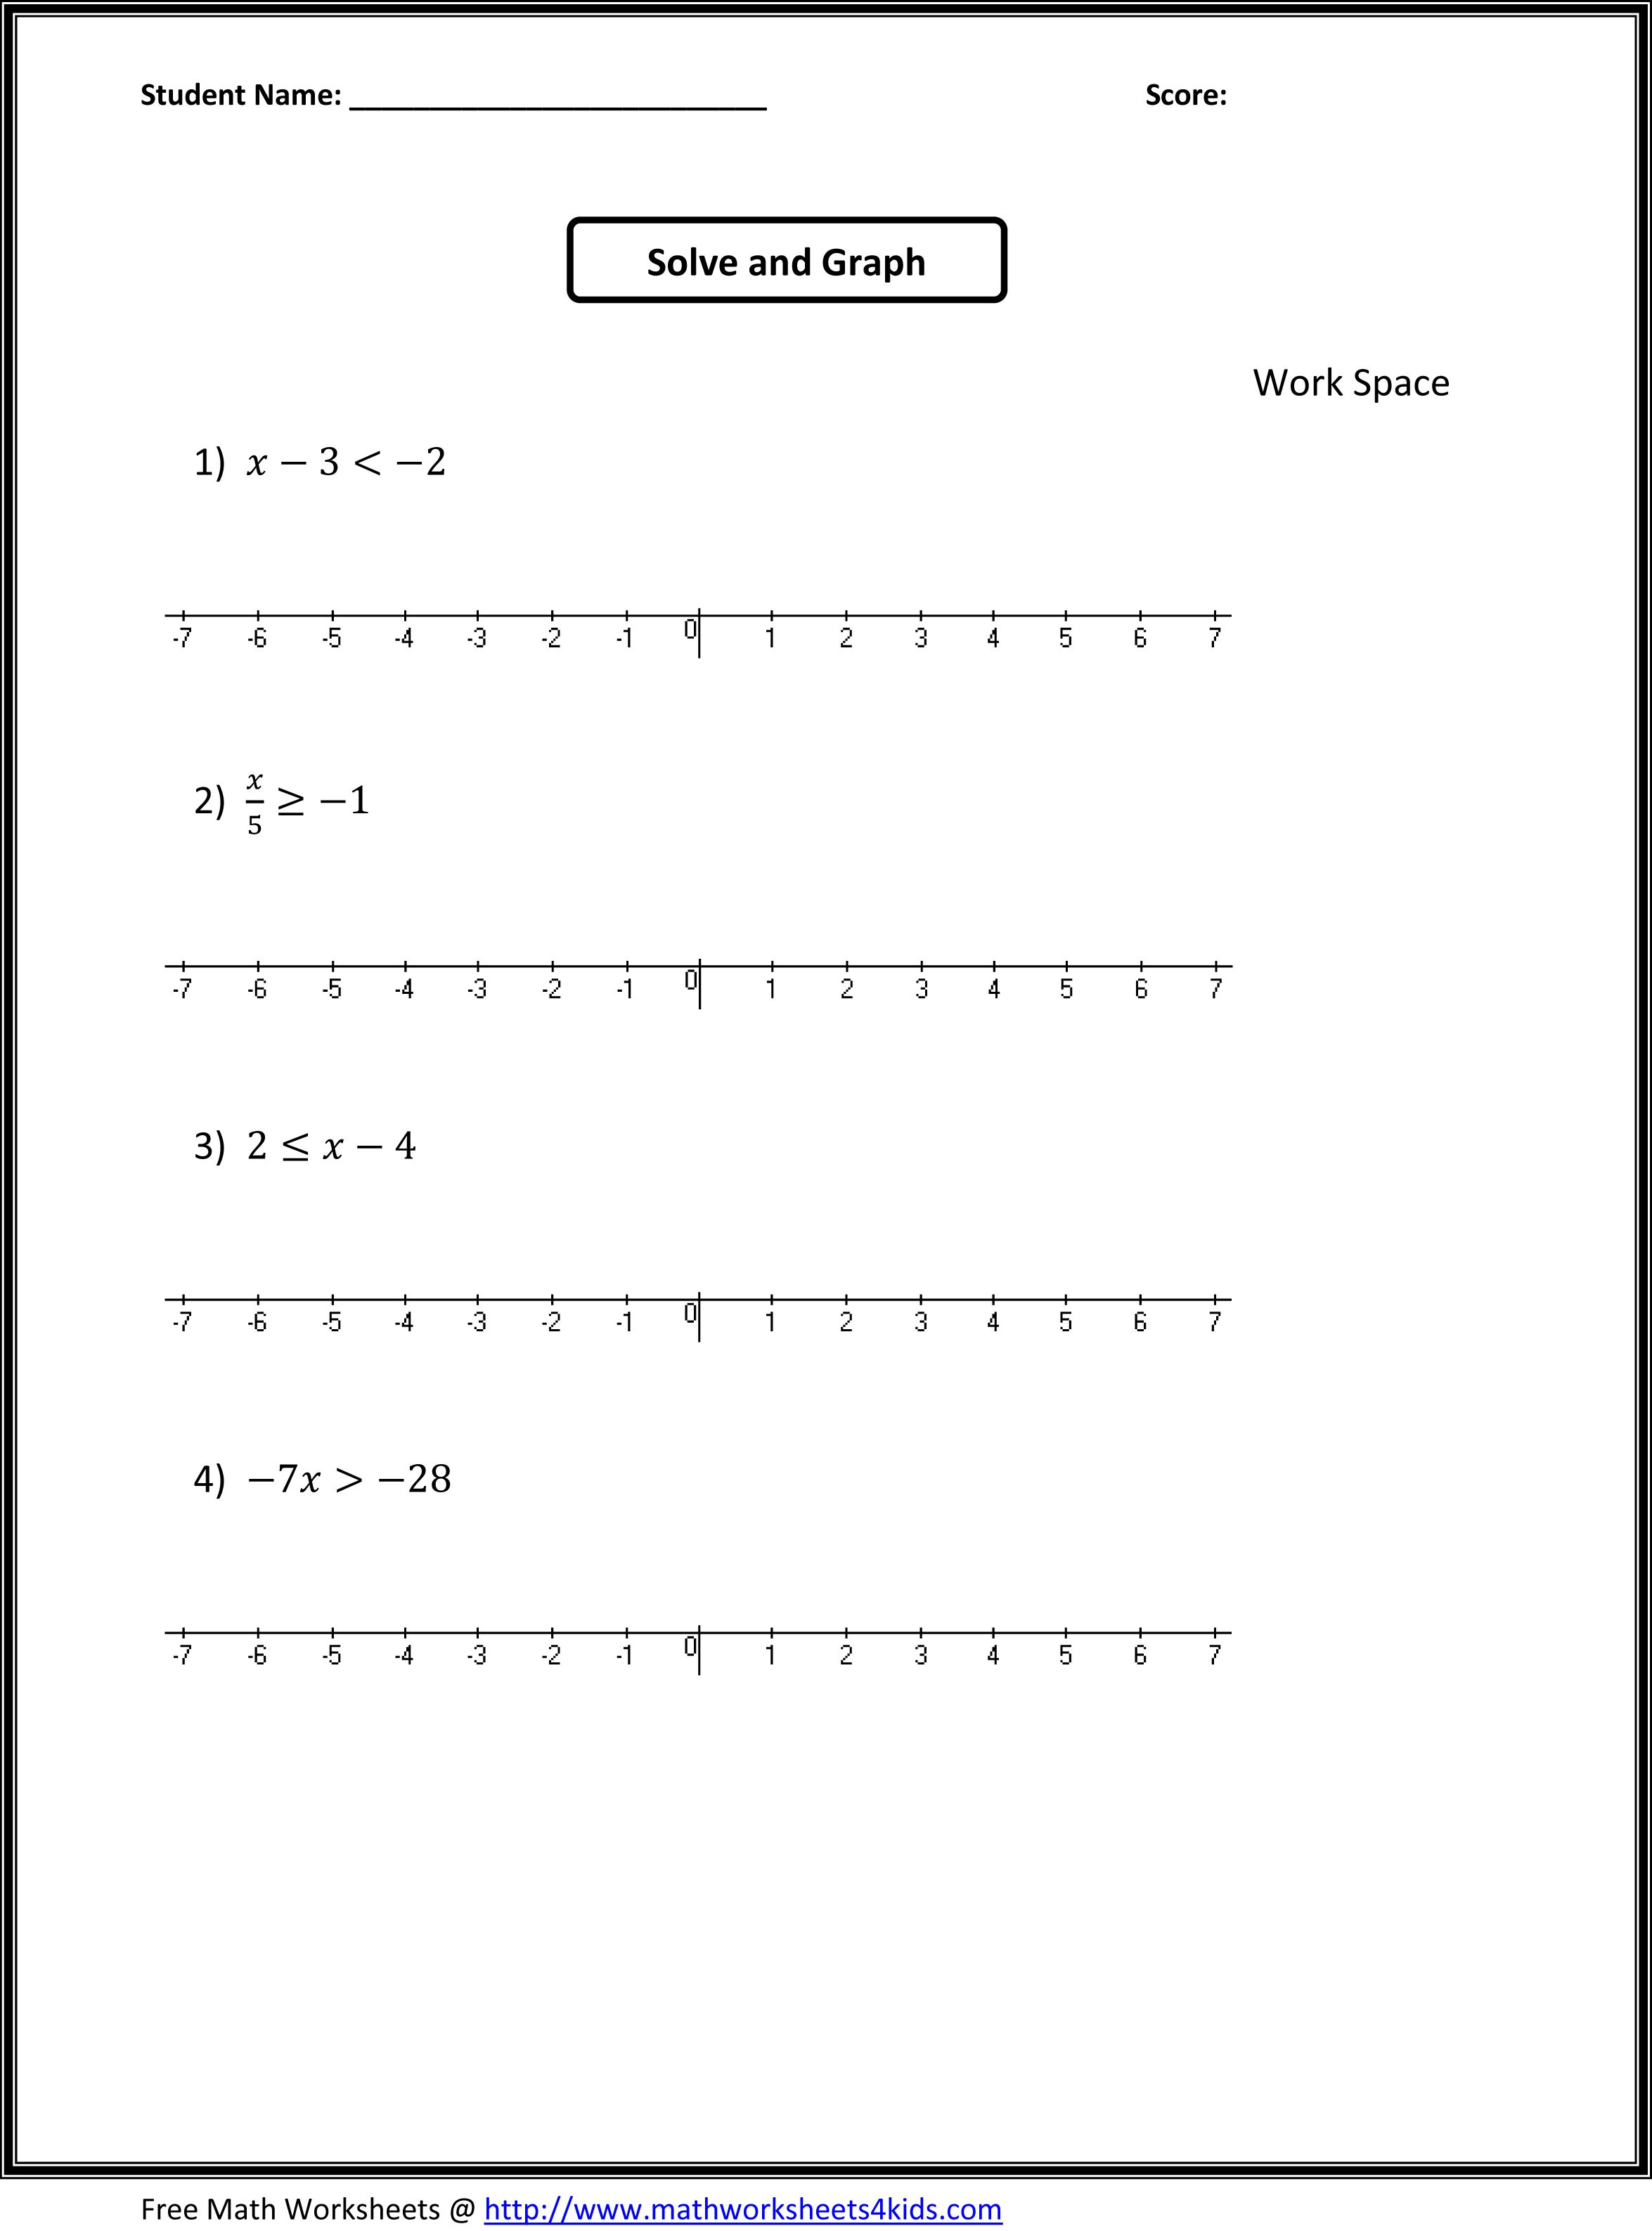 Worksheets 7th Grade Math Worksheets Printable Free 7th grade algebra worksheets math places worksheets